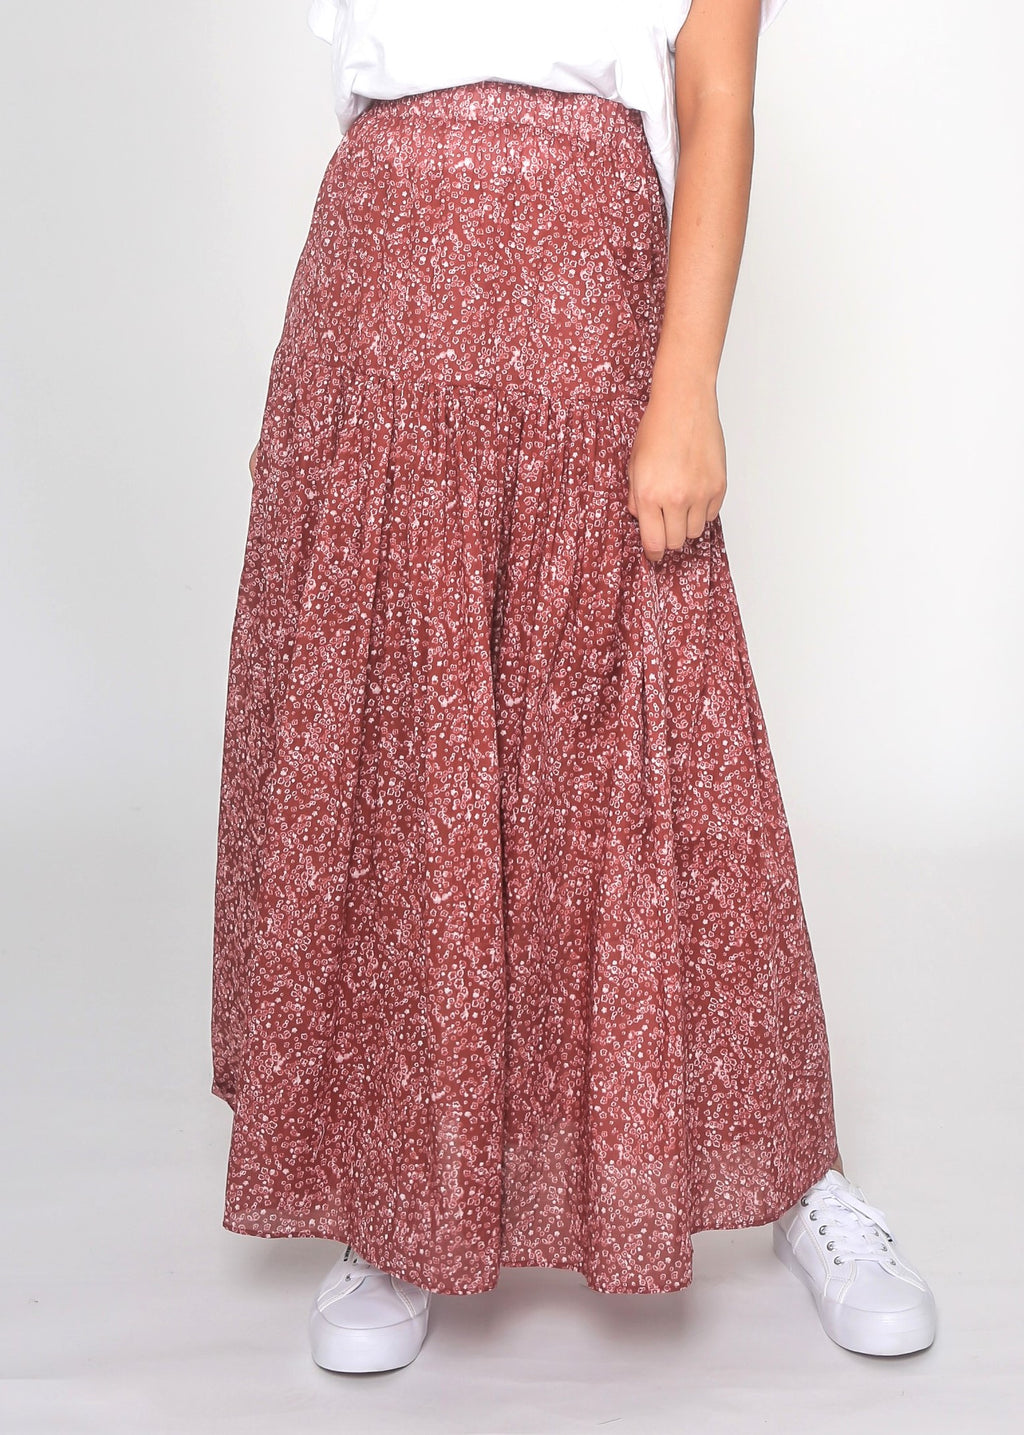 JUNE SKIRT - RUST FLORAL